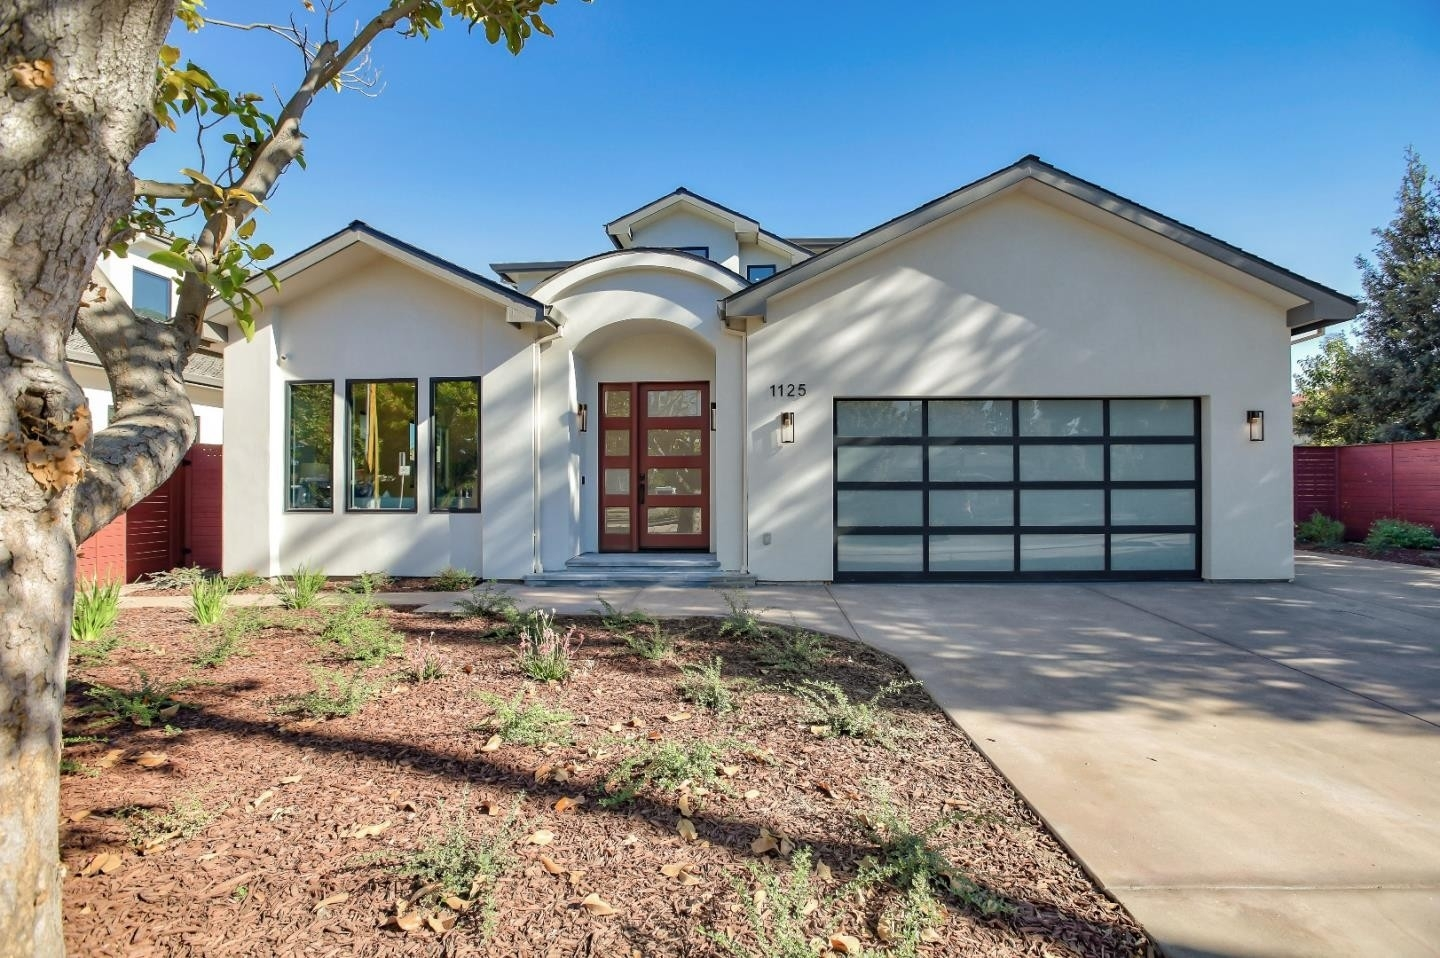 Single Family Home for Sale at Cuesta Park, Mountain View, CA 94040